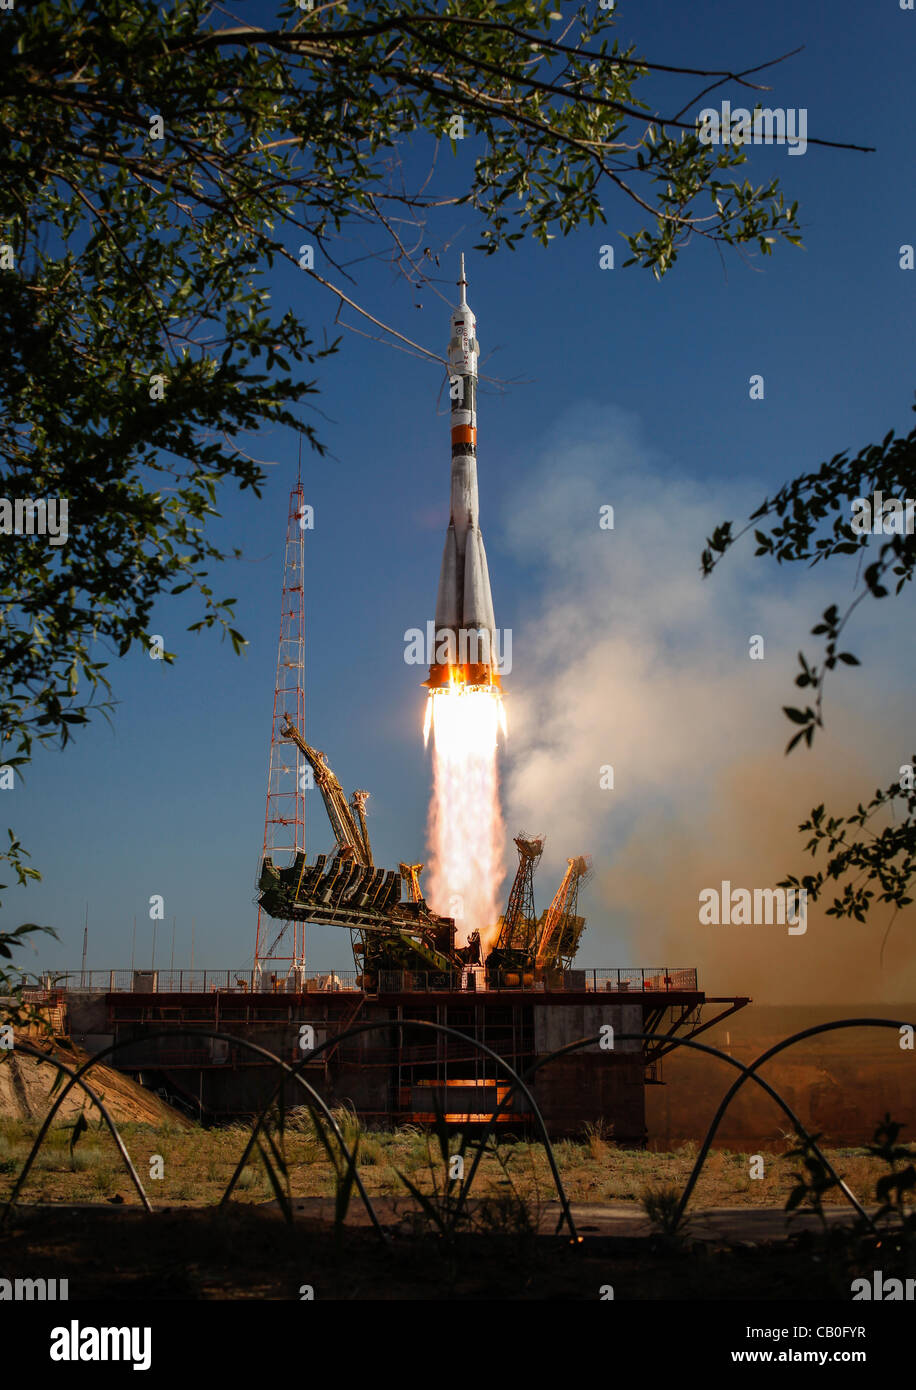 The Soyuz TMA-04M rocket launches from the Baikonur Cosmodrome carrying Expedition 31 to the International Space Stock Photo